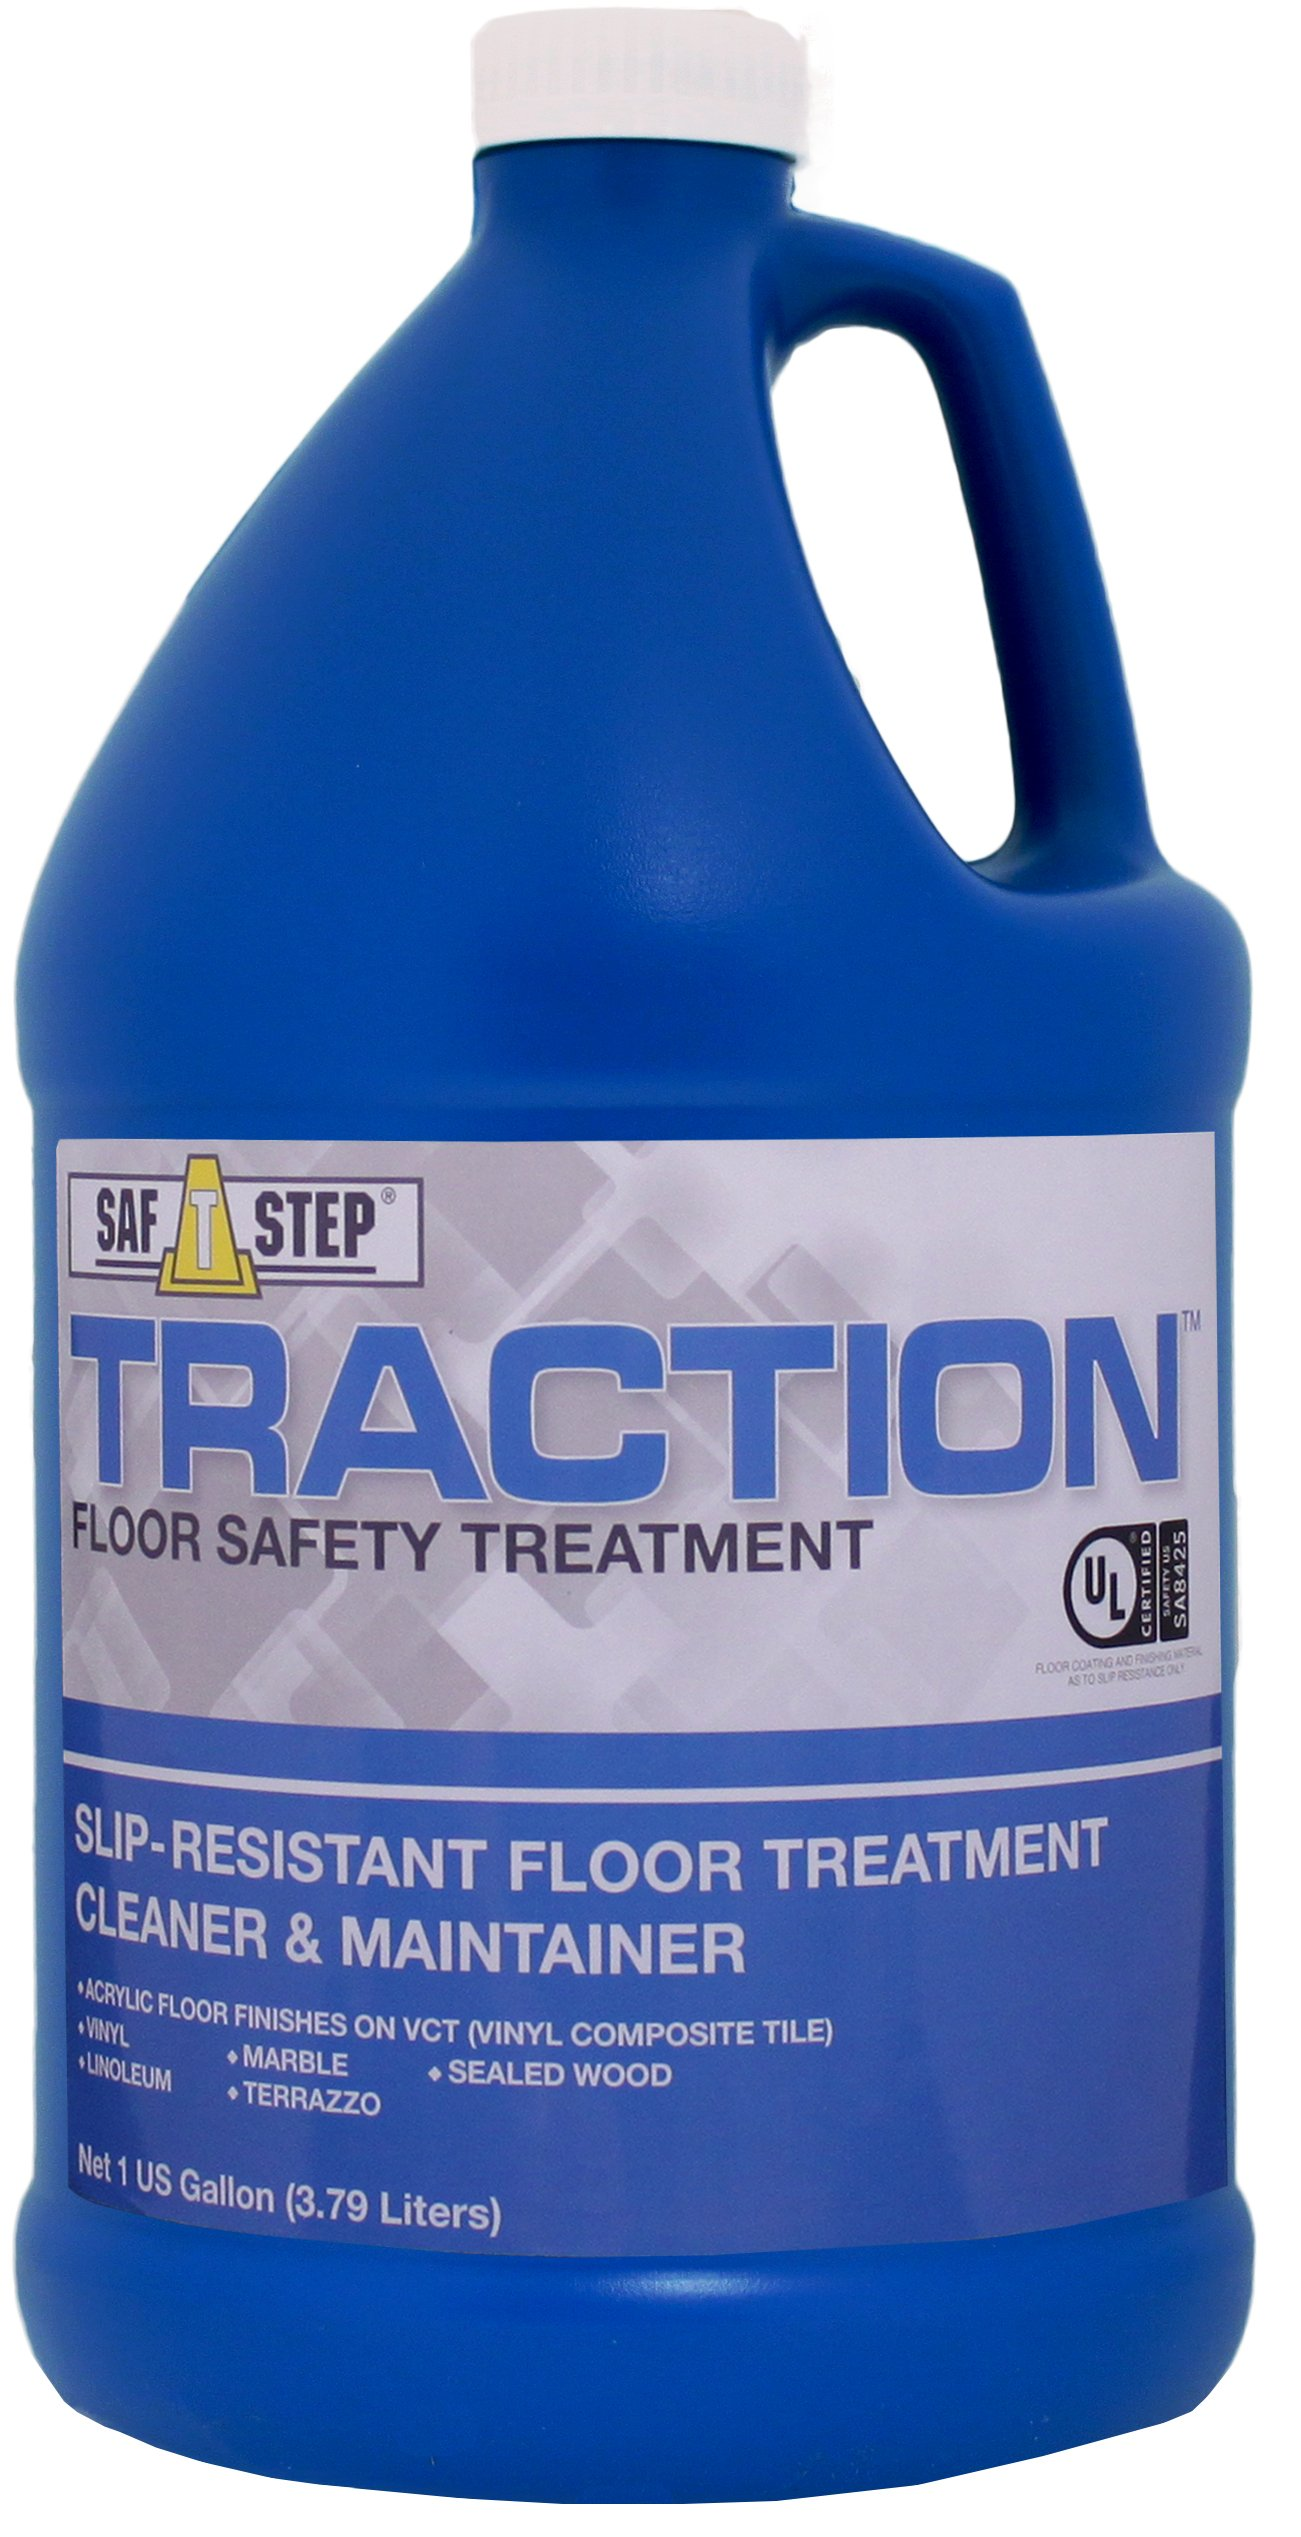 Dynamic Research Company TR128 Traction Slip Resistant Floor Treatment Cleaner and Maintainer